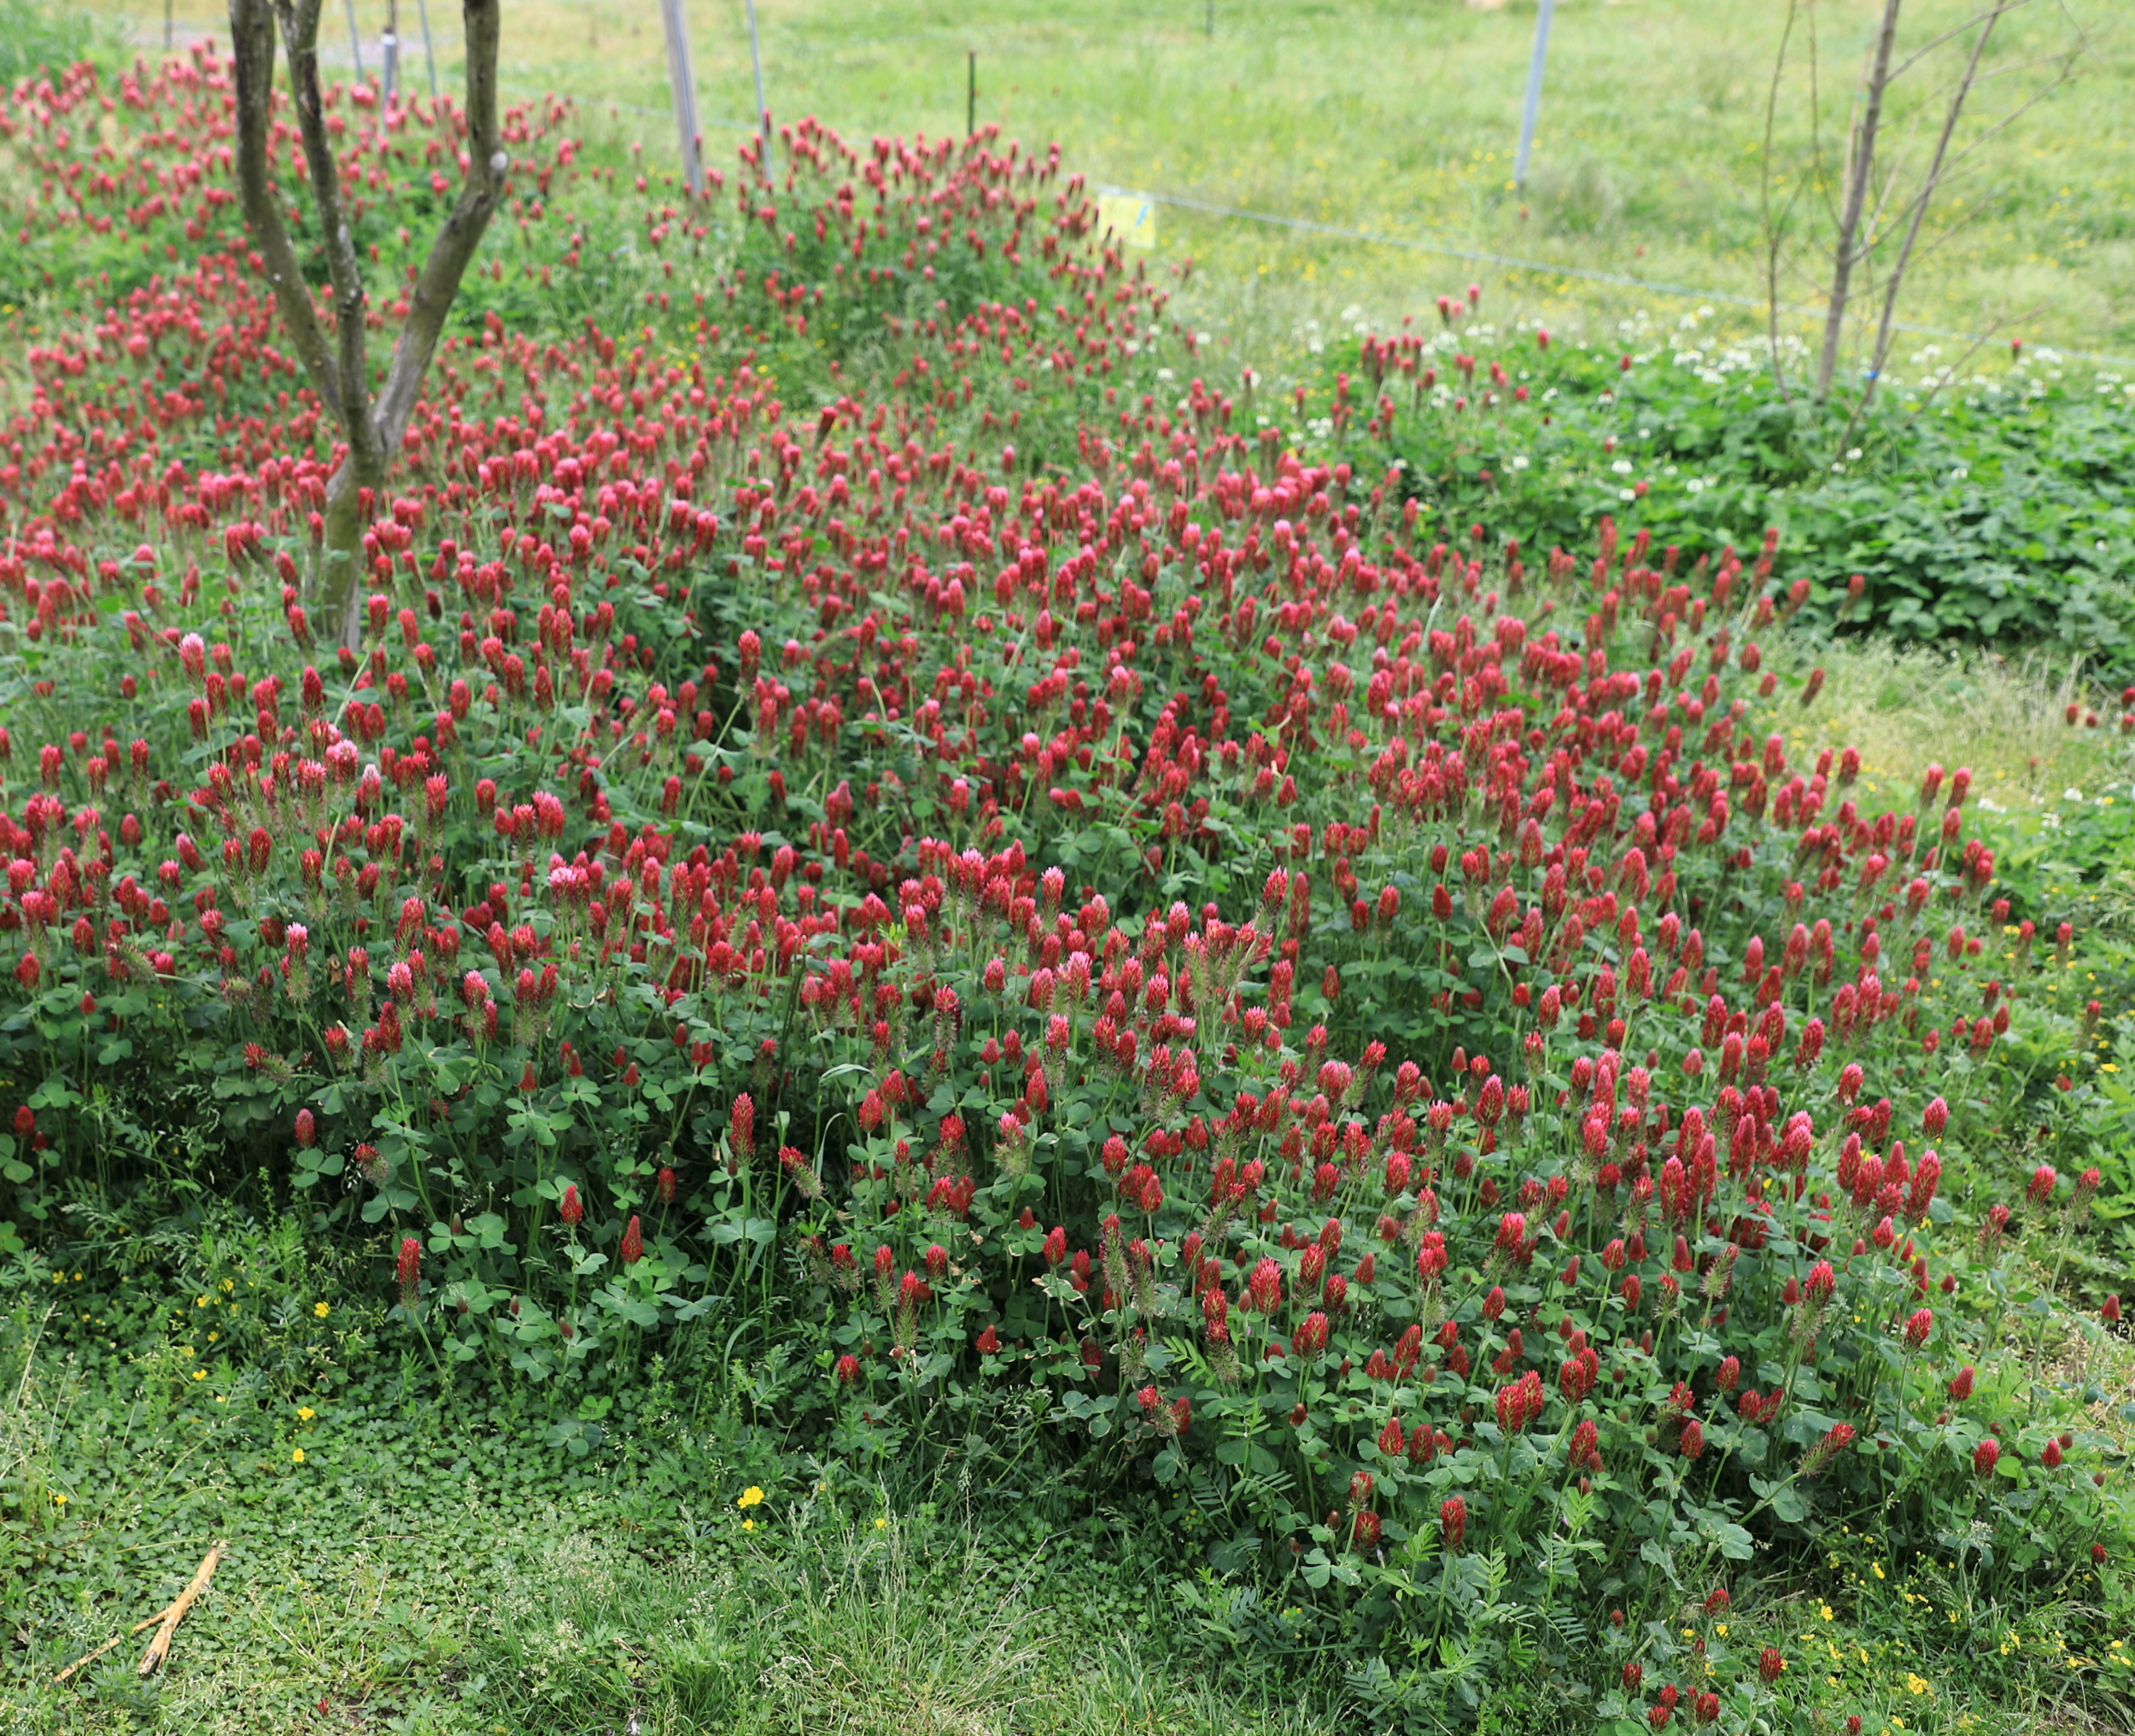 Rich red clover, Trifolium pratense , grows freely at the farm and provides tasty nourishment for the animals and also naturally fertilizes the land by fixing nitrogen in the soil.